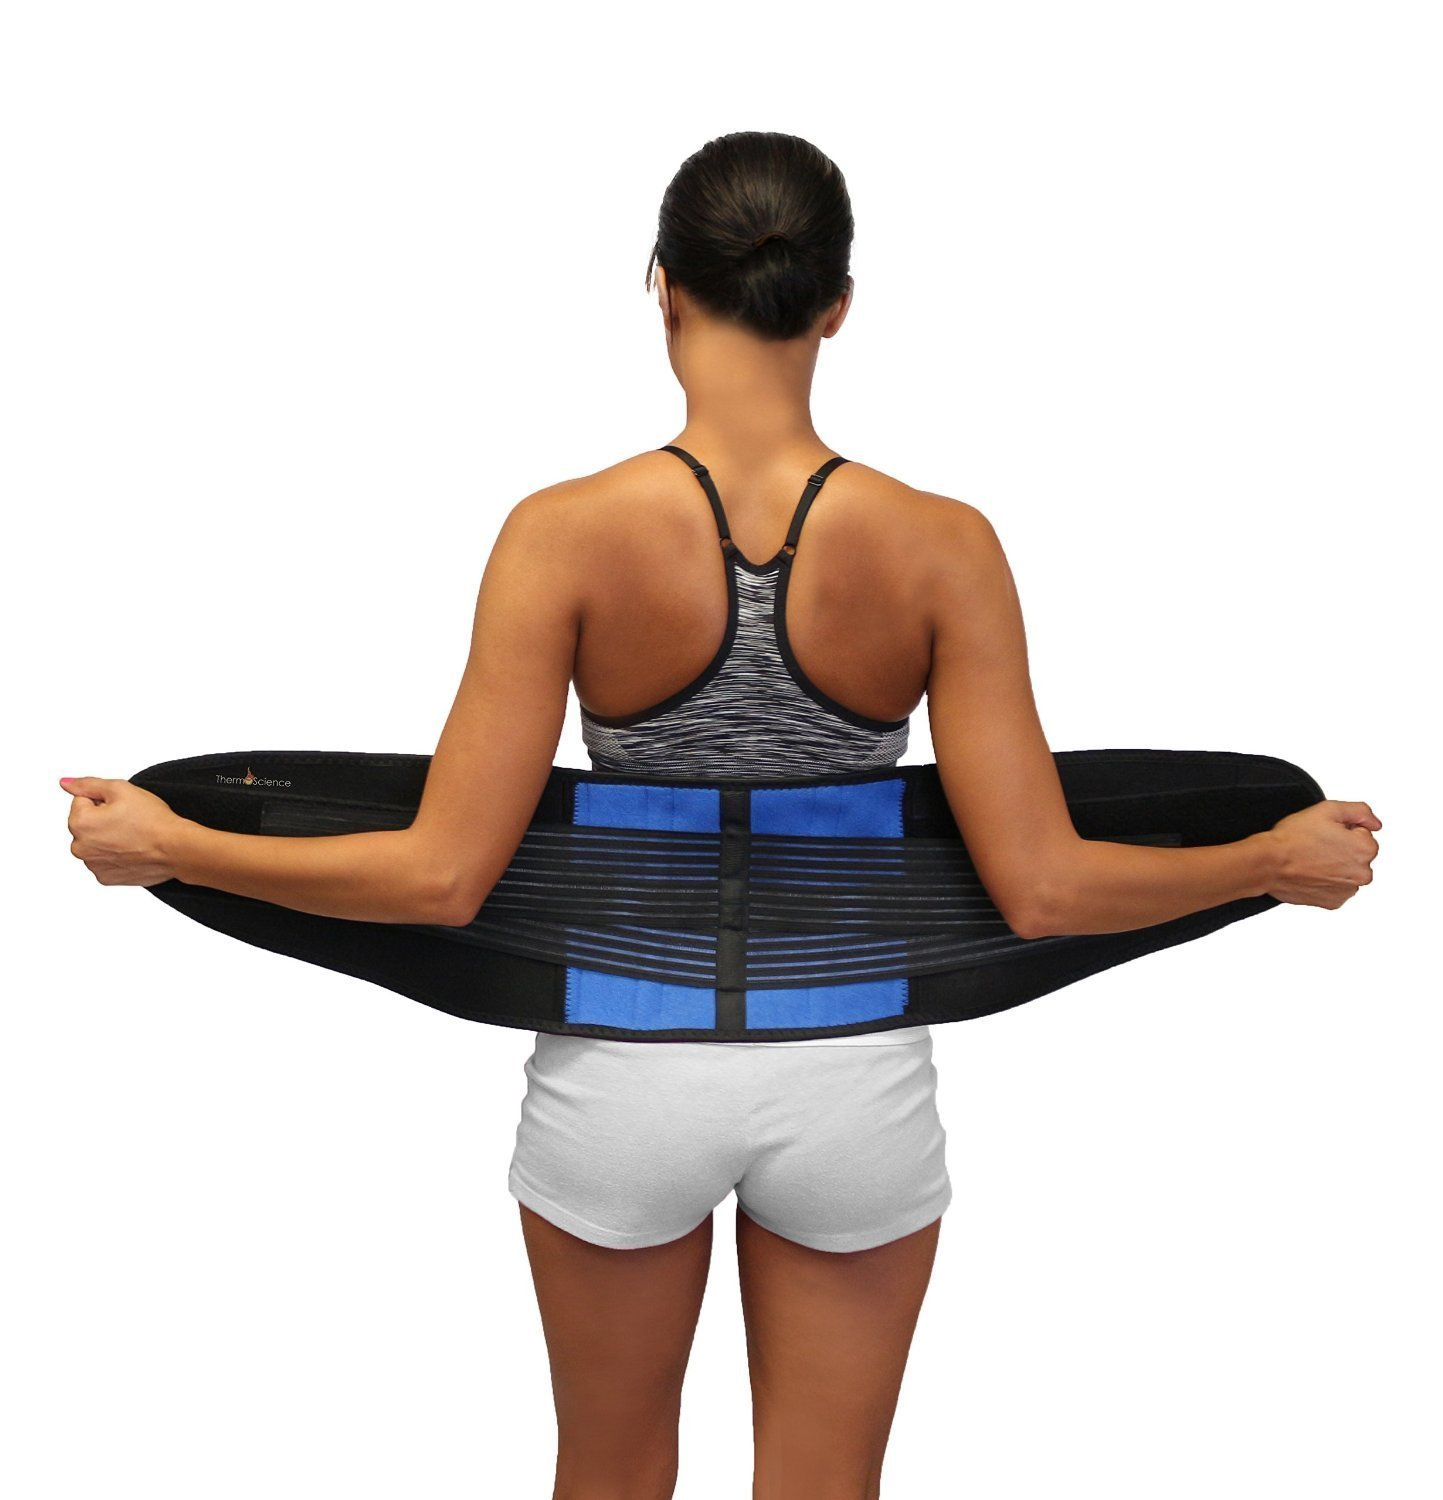 Amazon.com: Back Support Belt - Lower Pain Brace Relief for Men and Women Fits Up to 38 Inches Herniated Disc Upper or